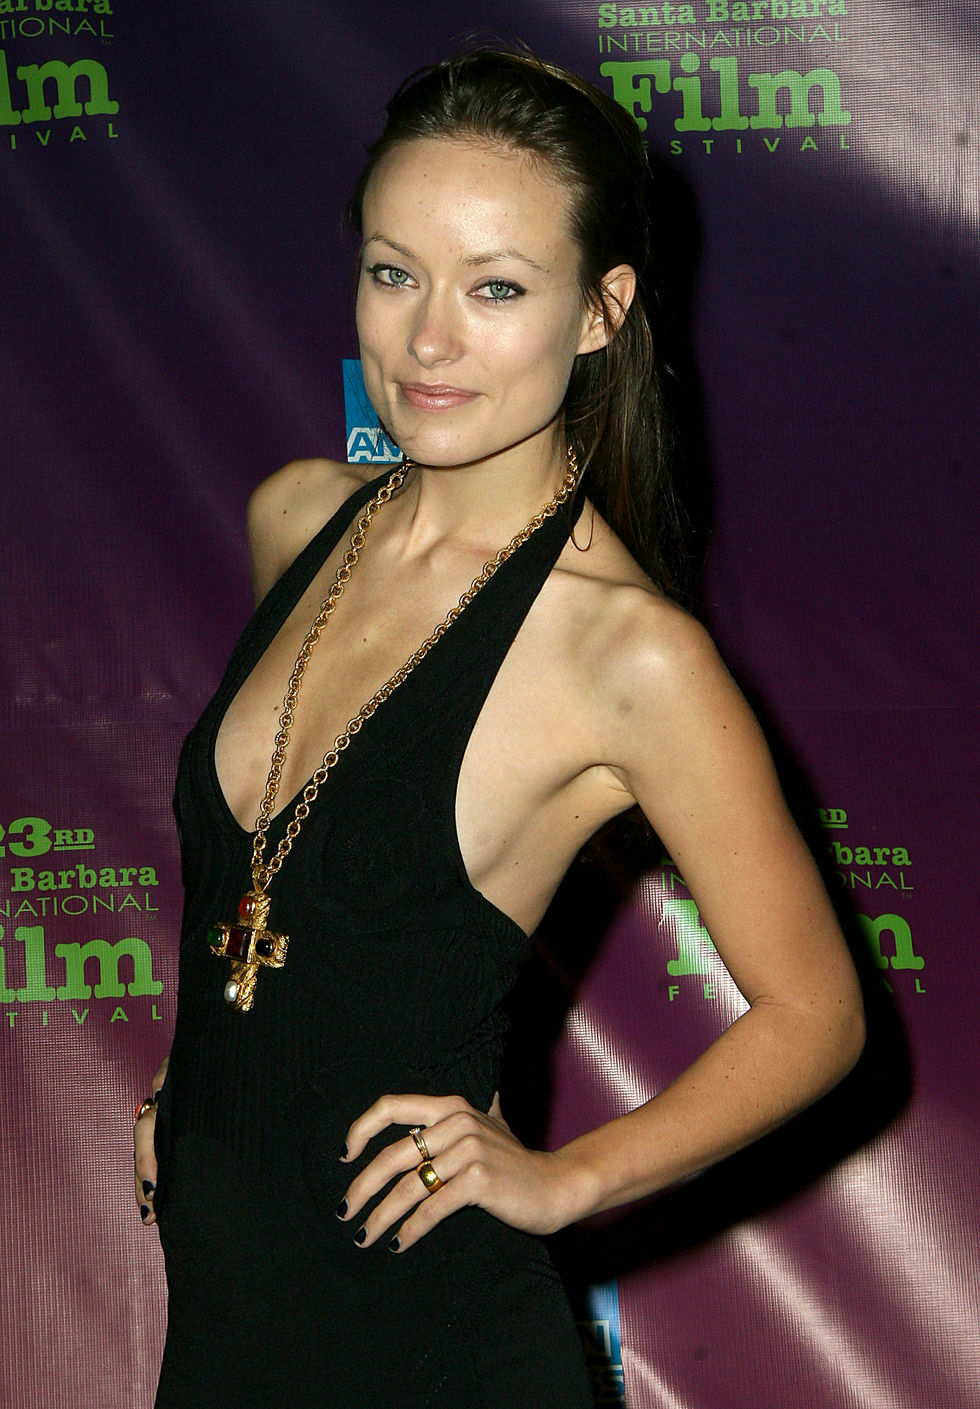 olivia-wilde-2008-santa-barbara-international-film-festival-01